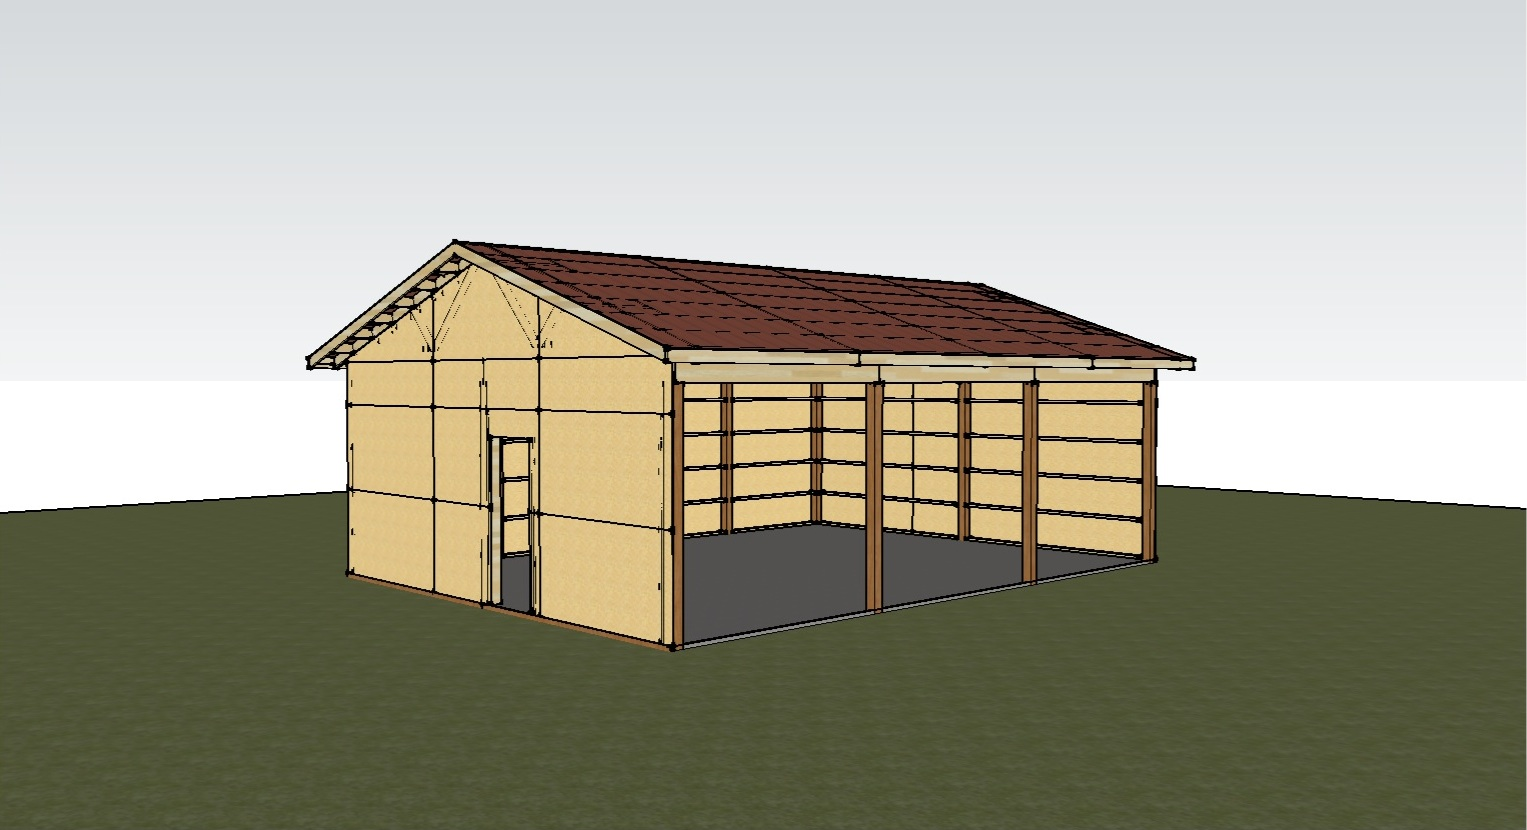 Pole barn plan joy studio design gallery best design Barn designs